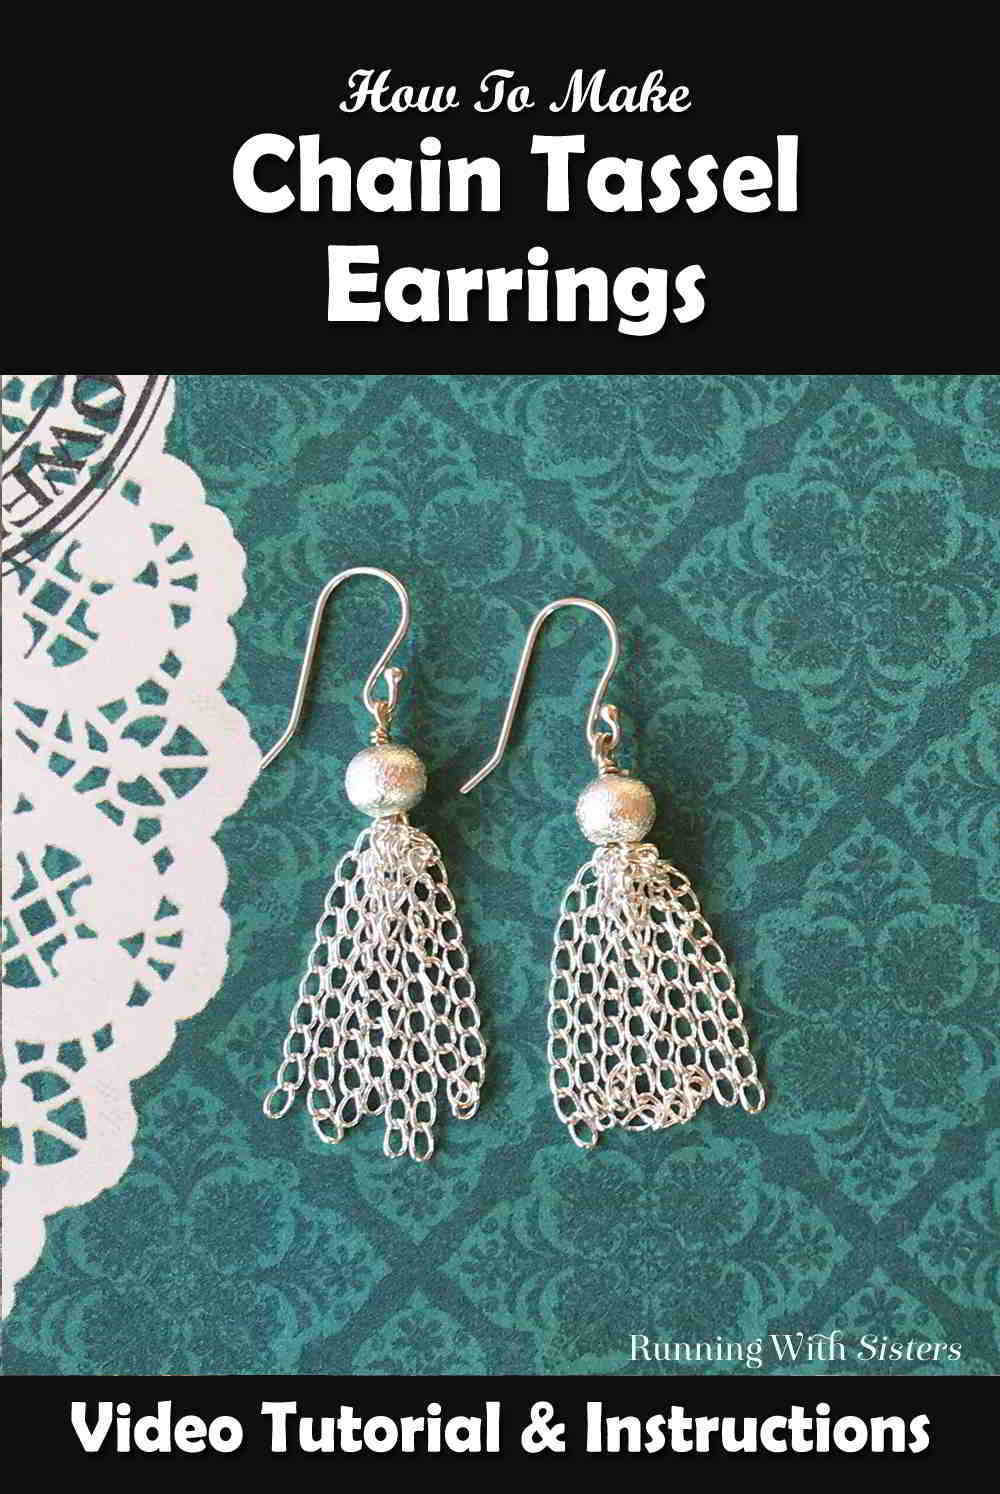 Make a pair of Chain Tassel Earrings! In this video tutorial, we'll show you how to make tassels from silver chain and how to turn them into earrings.